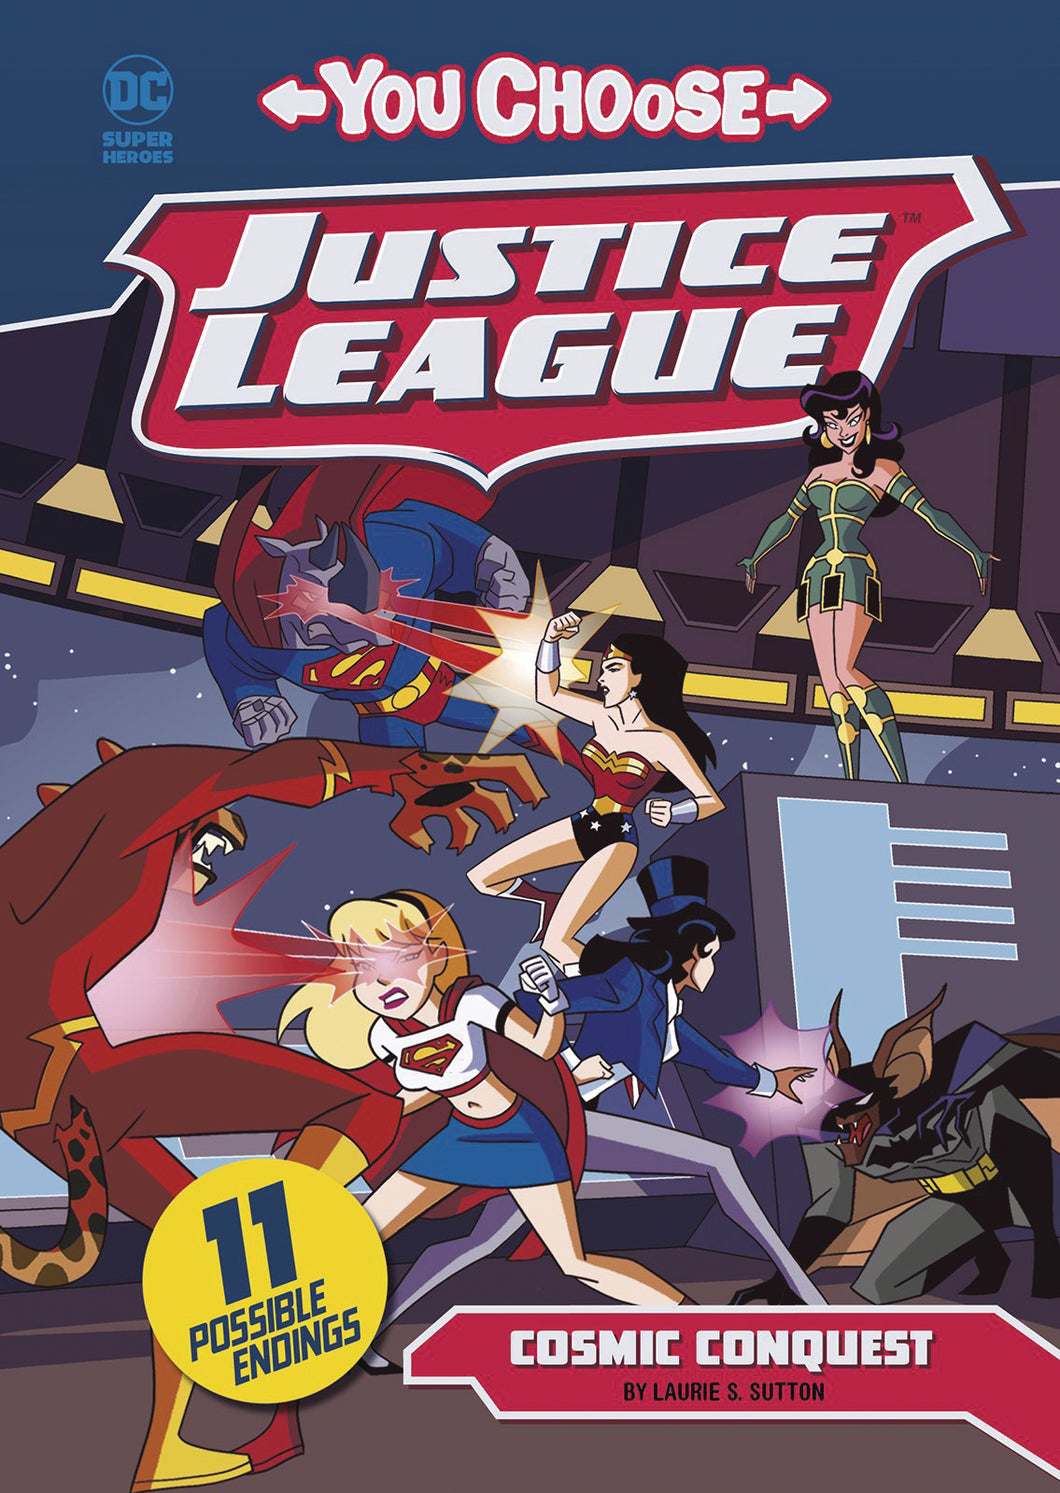 JUSTICE LEAGUE YOU CHOOSE YR TP COSMIC CONQUEST (C: 0-1-0)